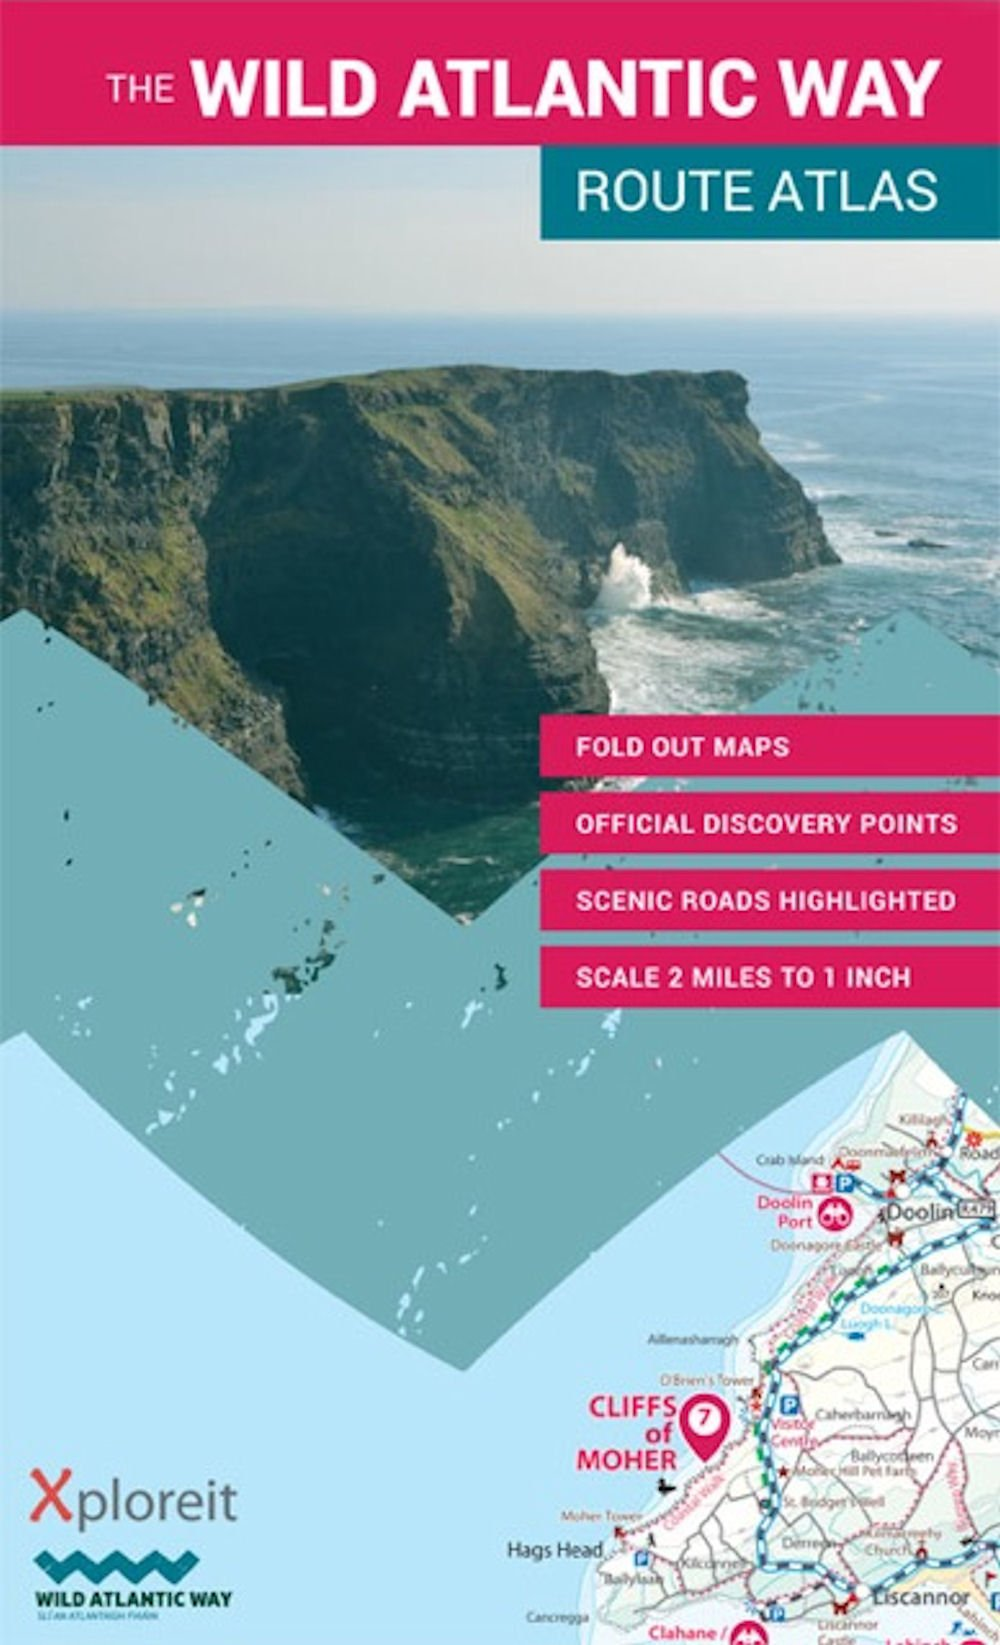 Wild Atlantic Way Route Atlas: Ireland's Journey West (Xploreit Maps)